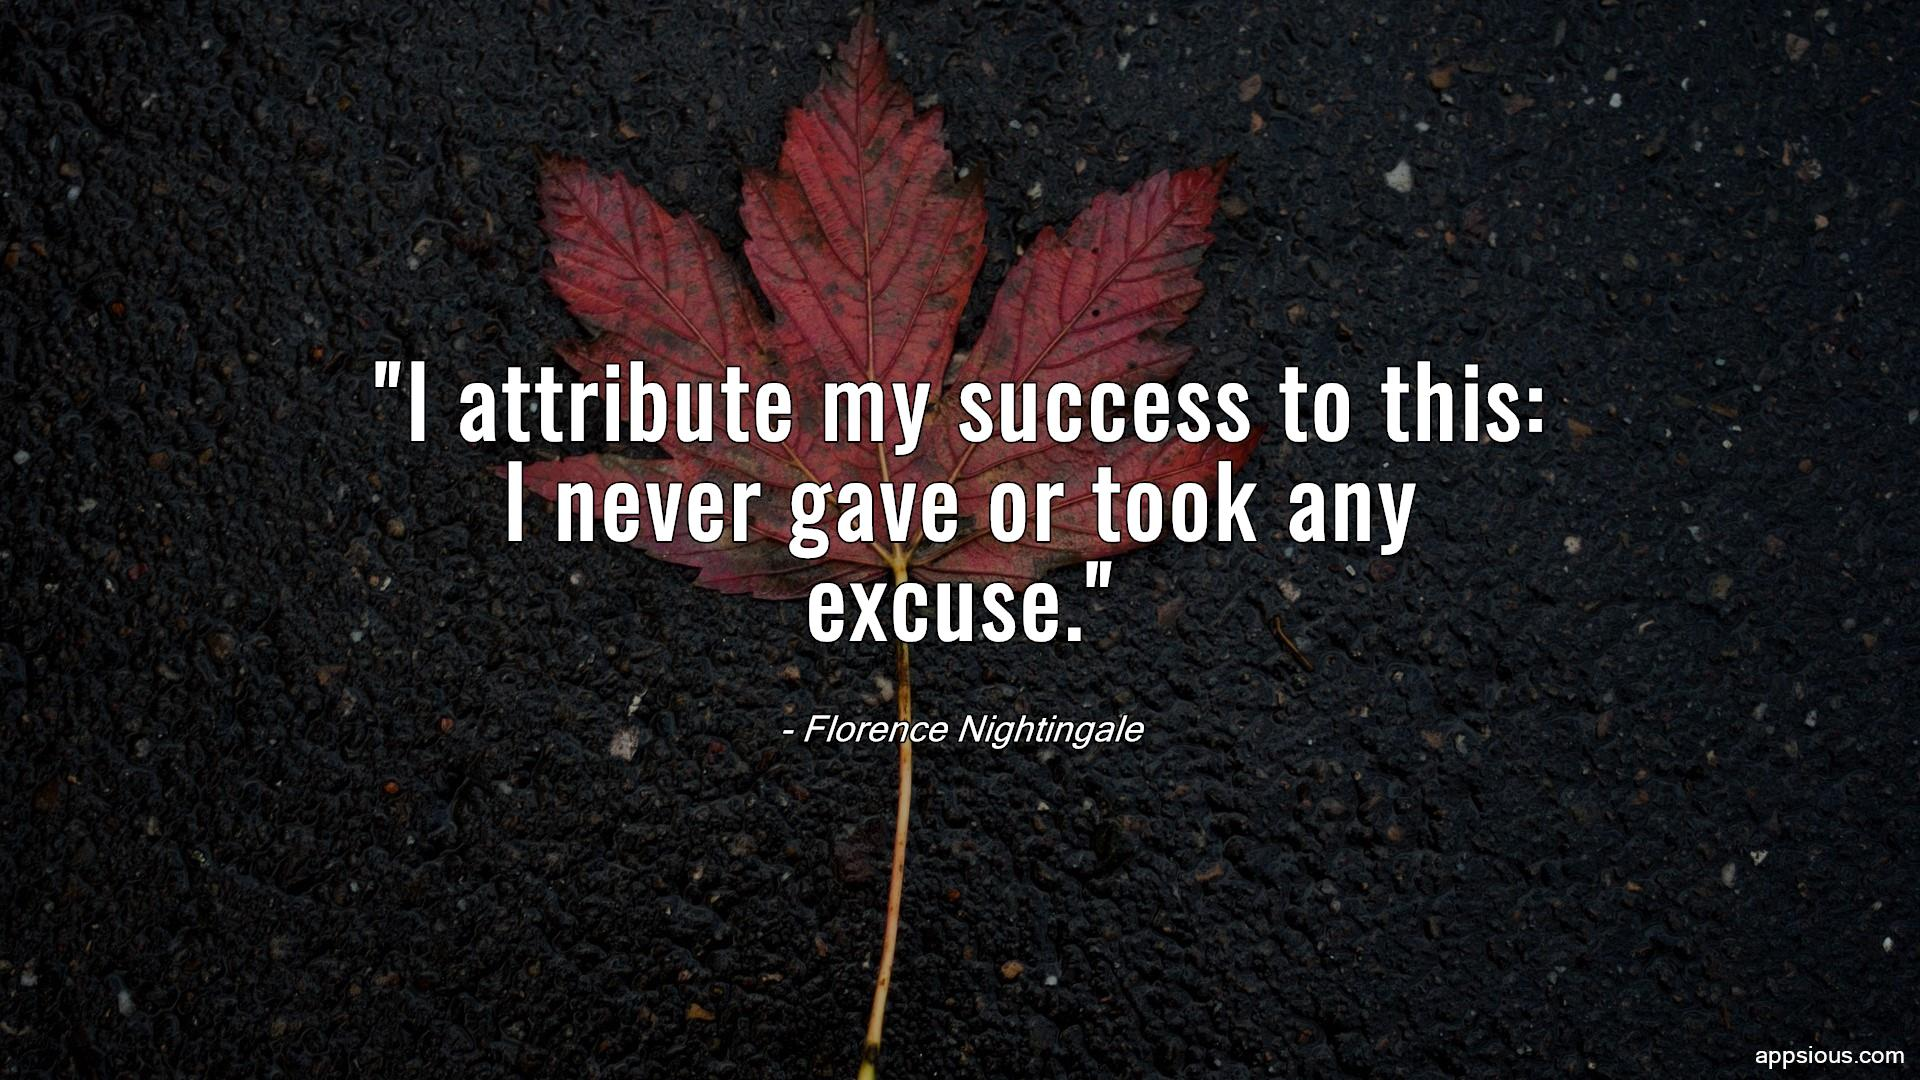 I attribute my success to this: I never gave or took any excuse.